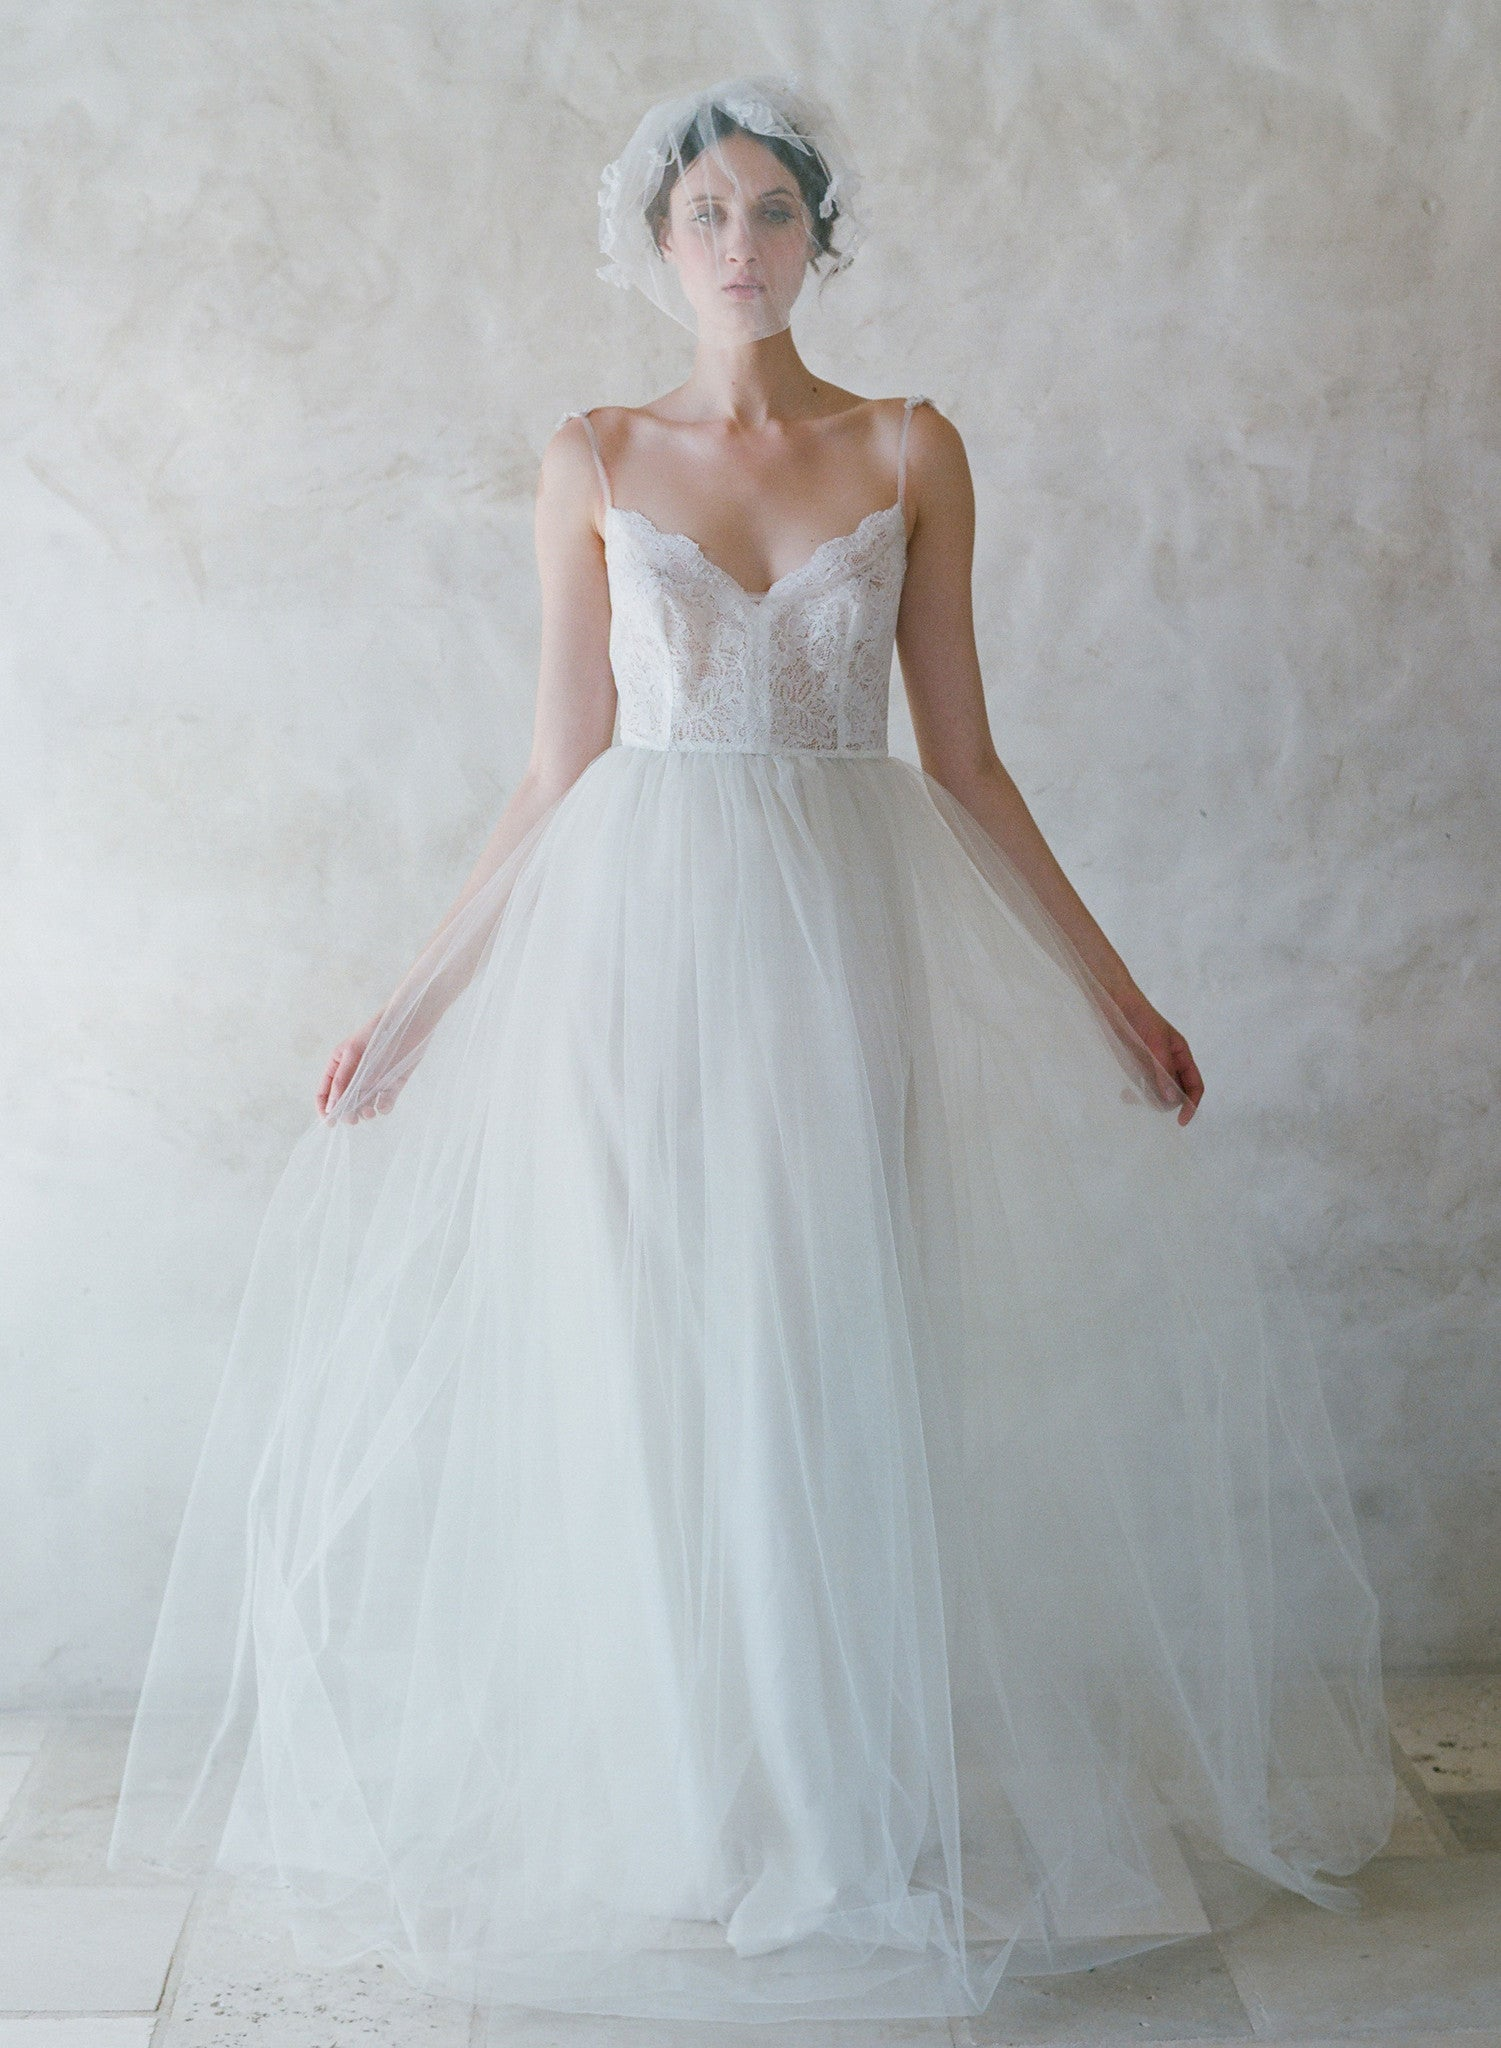 Gowns - Bridal gowns, wedding dresses, lace dresses | Twigs & Honey ...